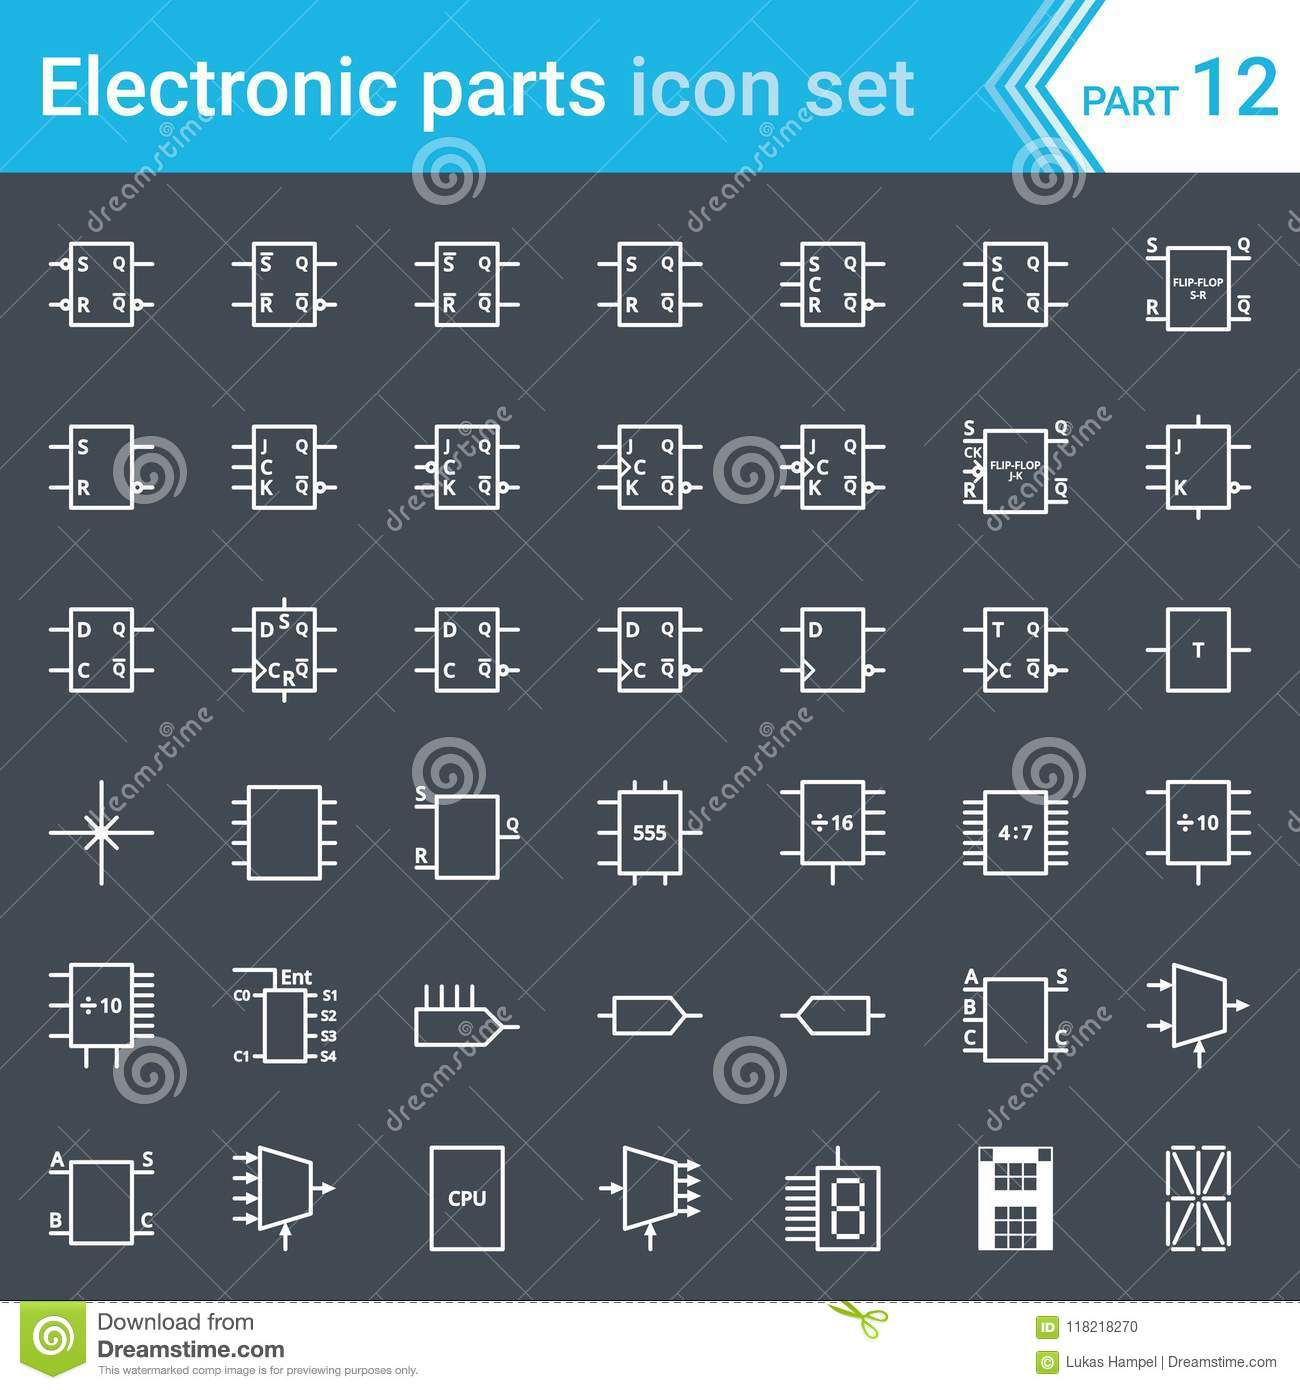 electric and electronic icons, electric diagram symbols  digital electronics,  flip-flop, logic circuit, display, programming